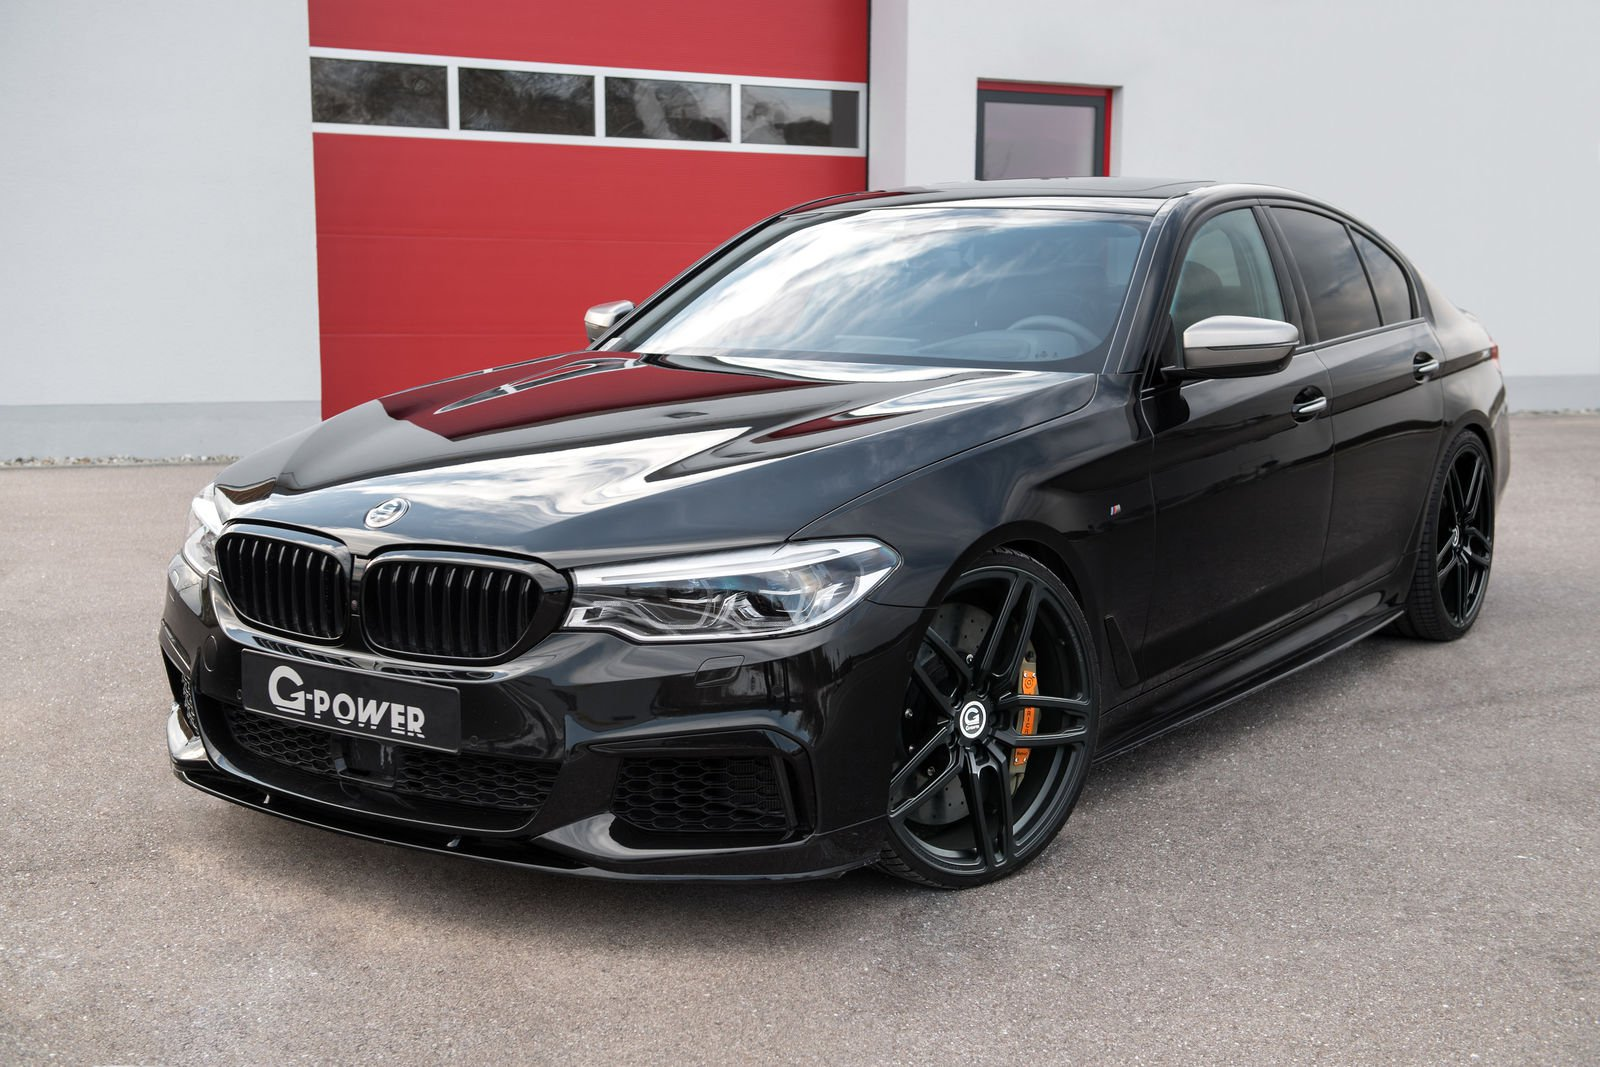 To close the remaining gap, G-Power has released an ECU upgrade for the M550i